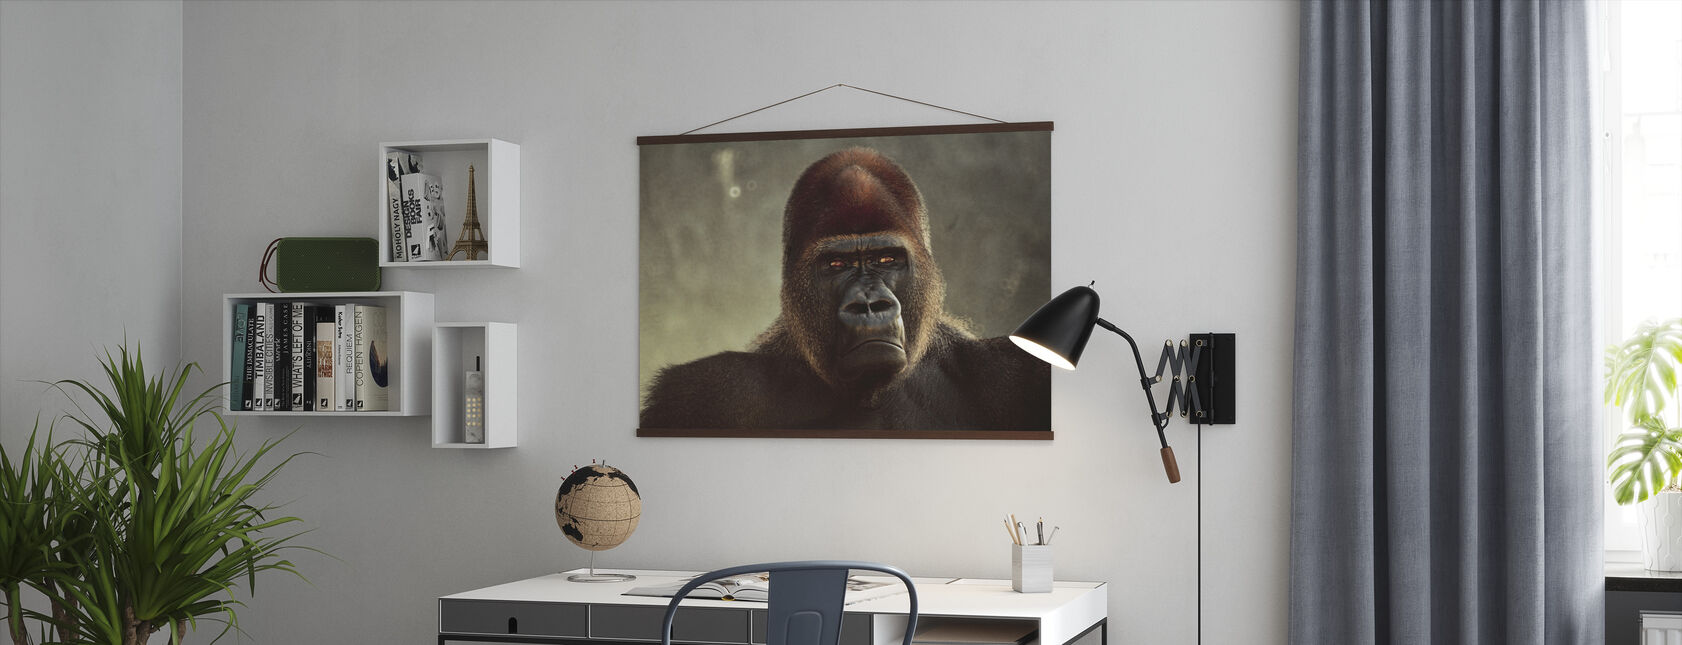 Mighty Gorilla - Poster - Office